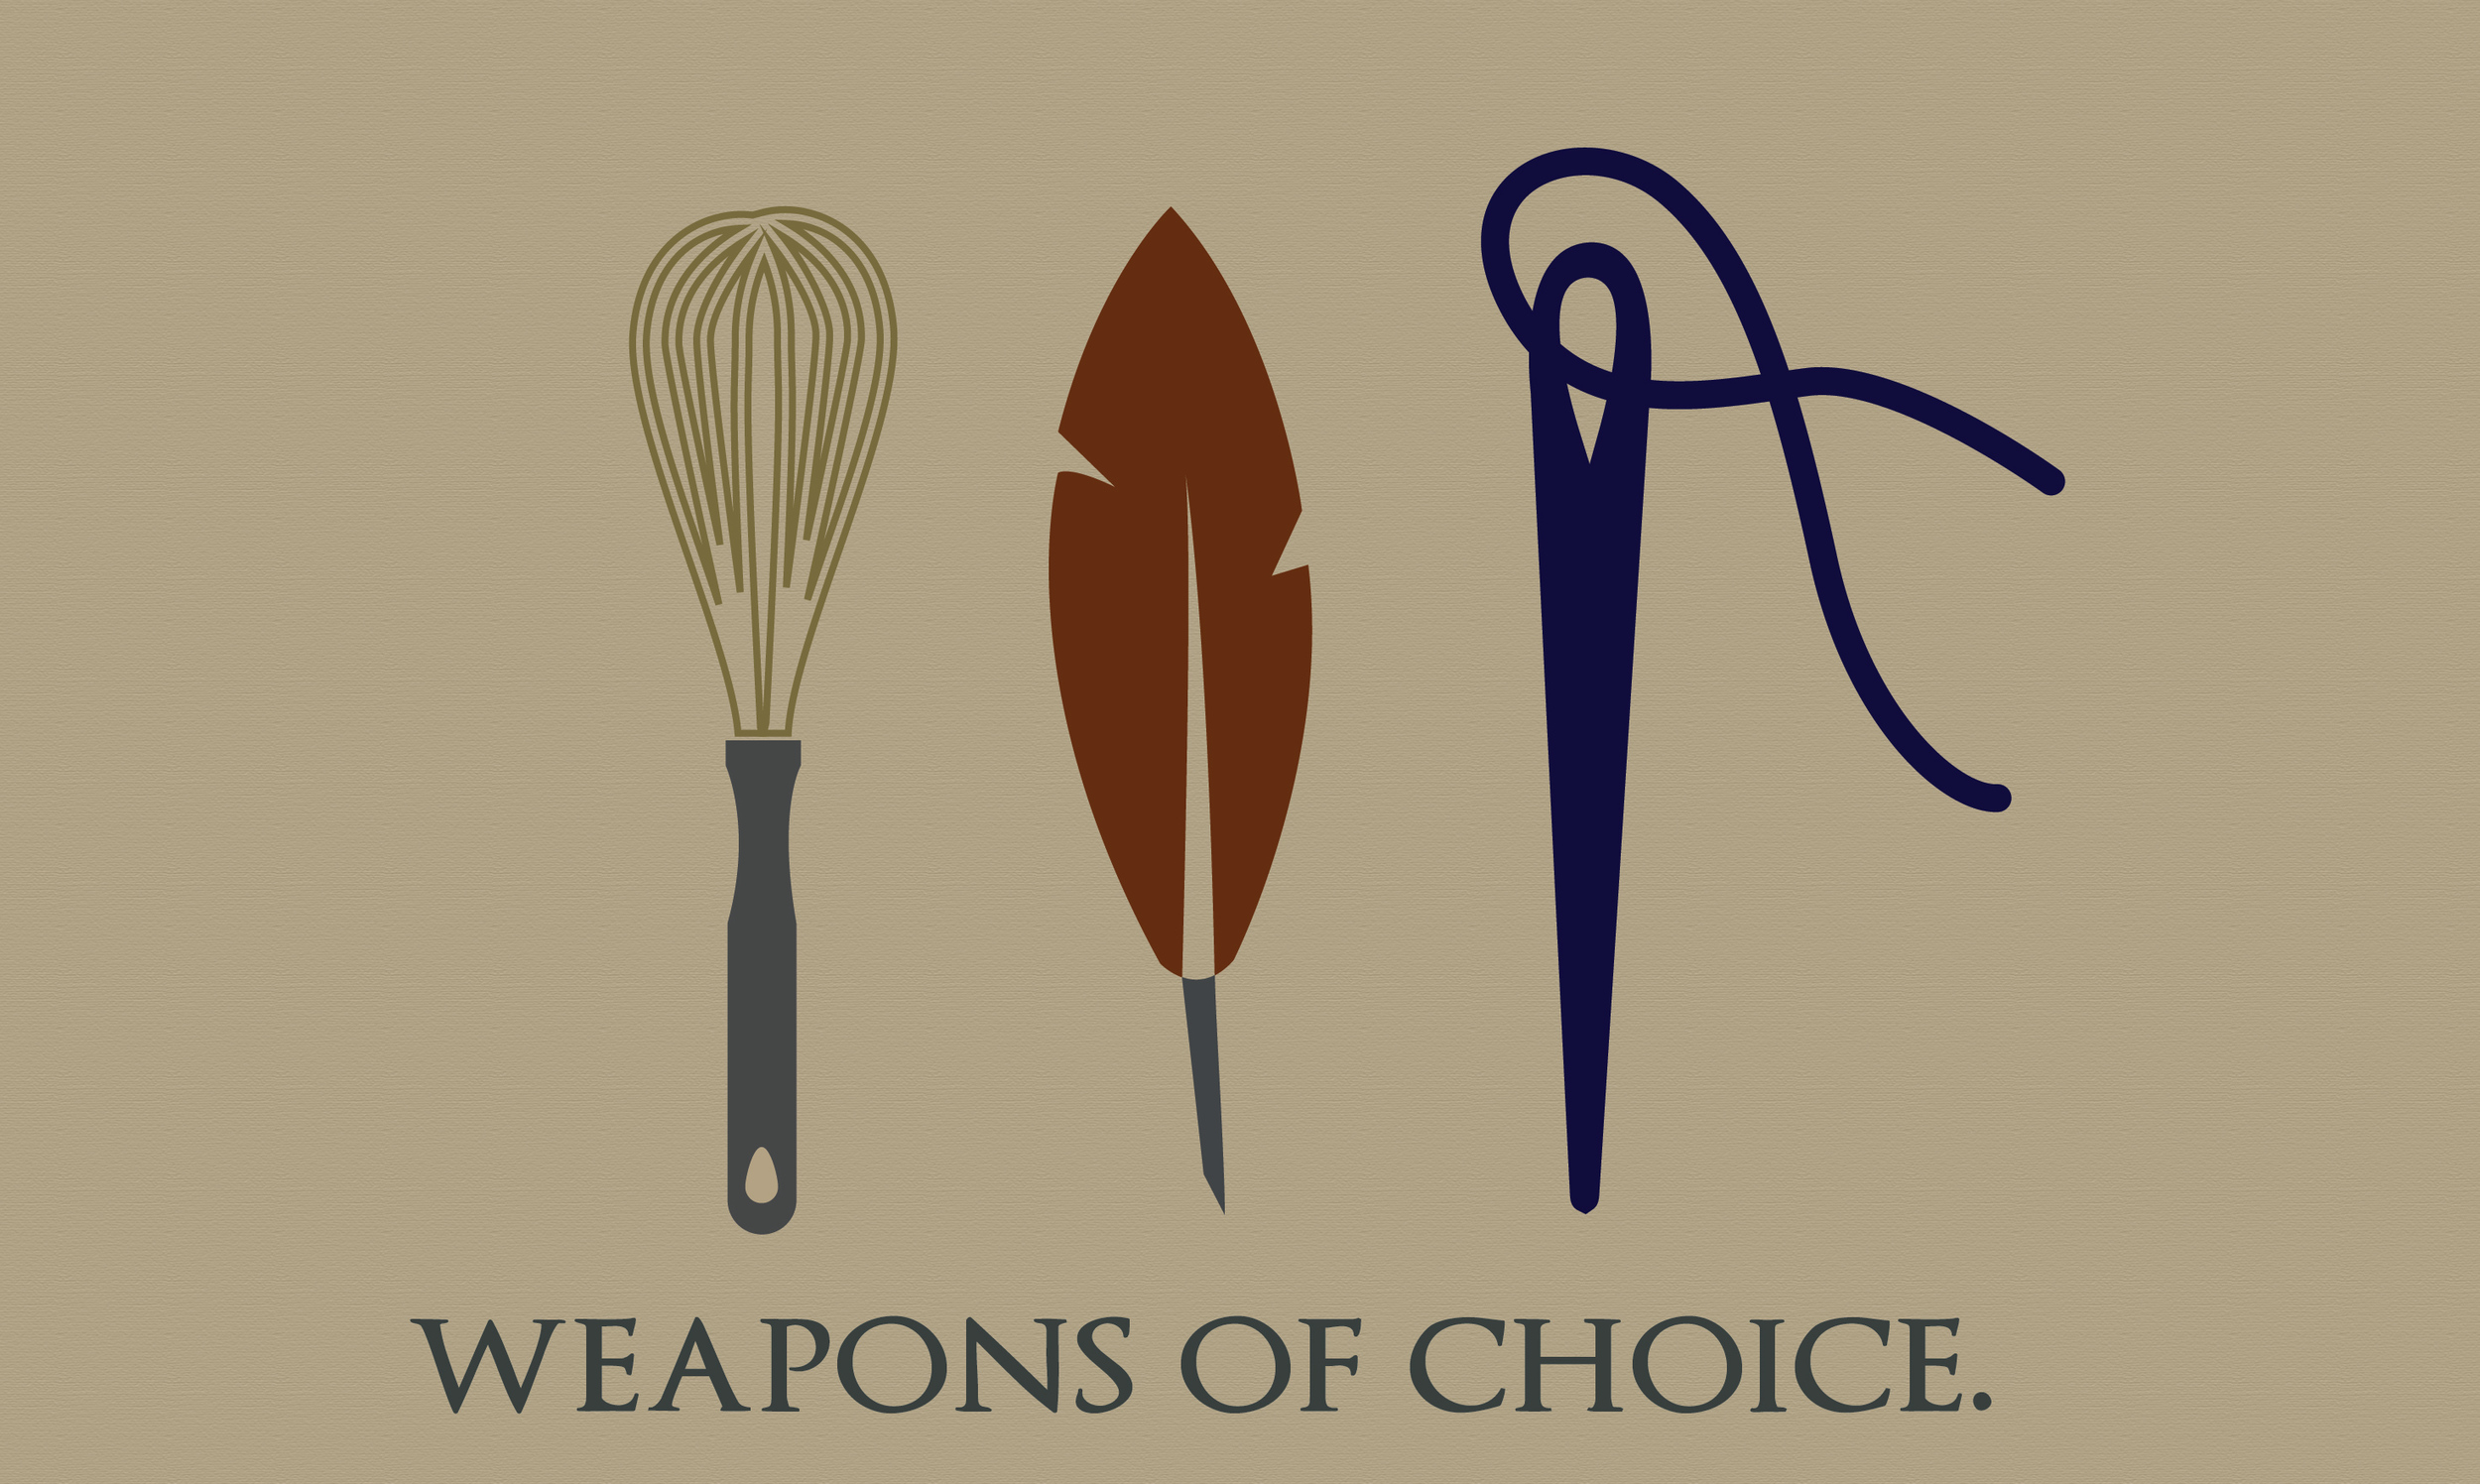 A WHISK FOR THE SWEET TOOTH - A PEN FOR VISION & CLARITY - A NEEDLE TO CREATE